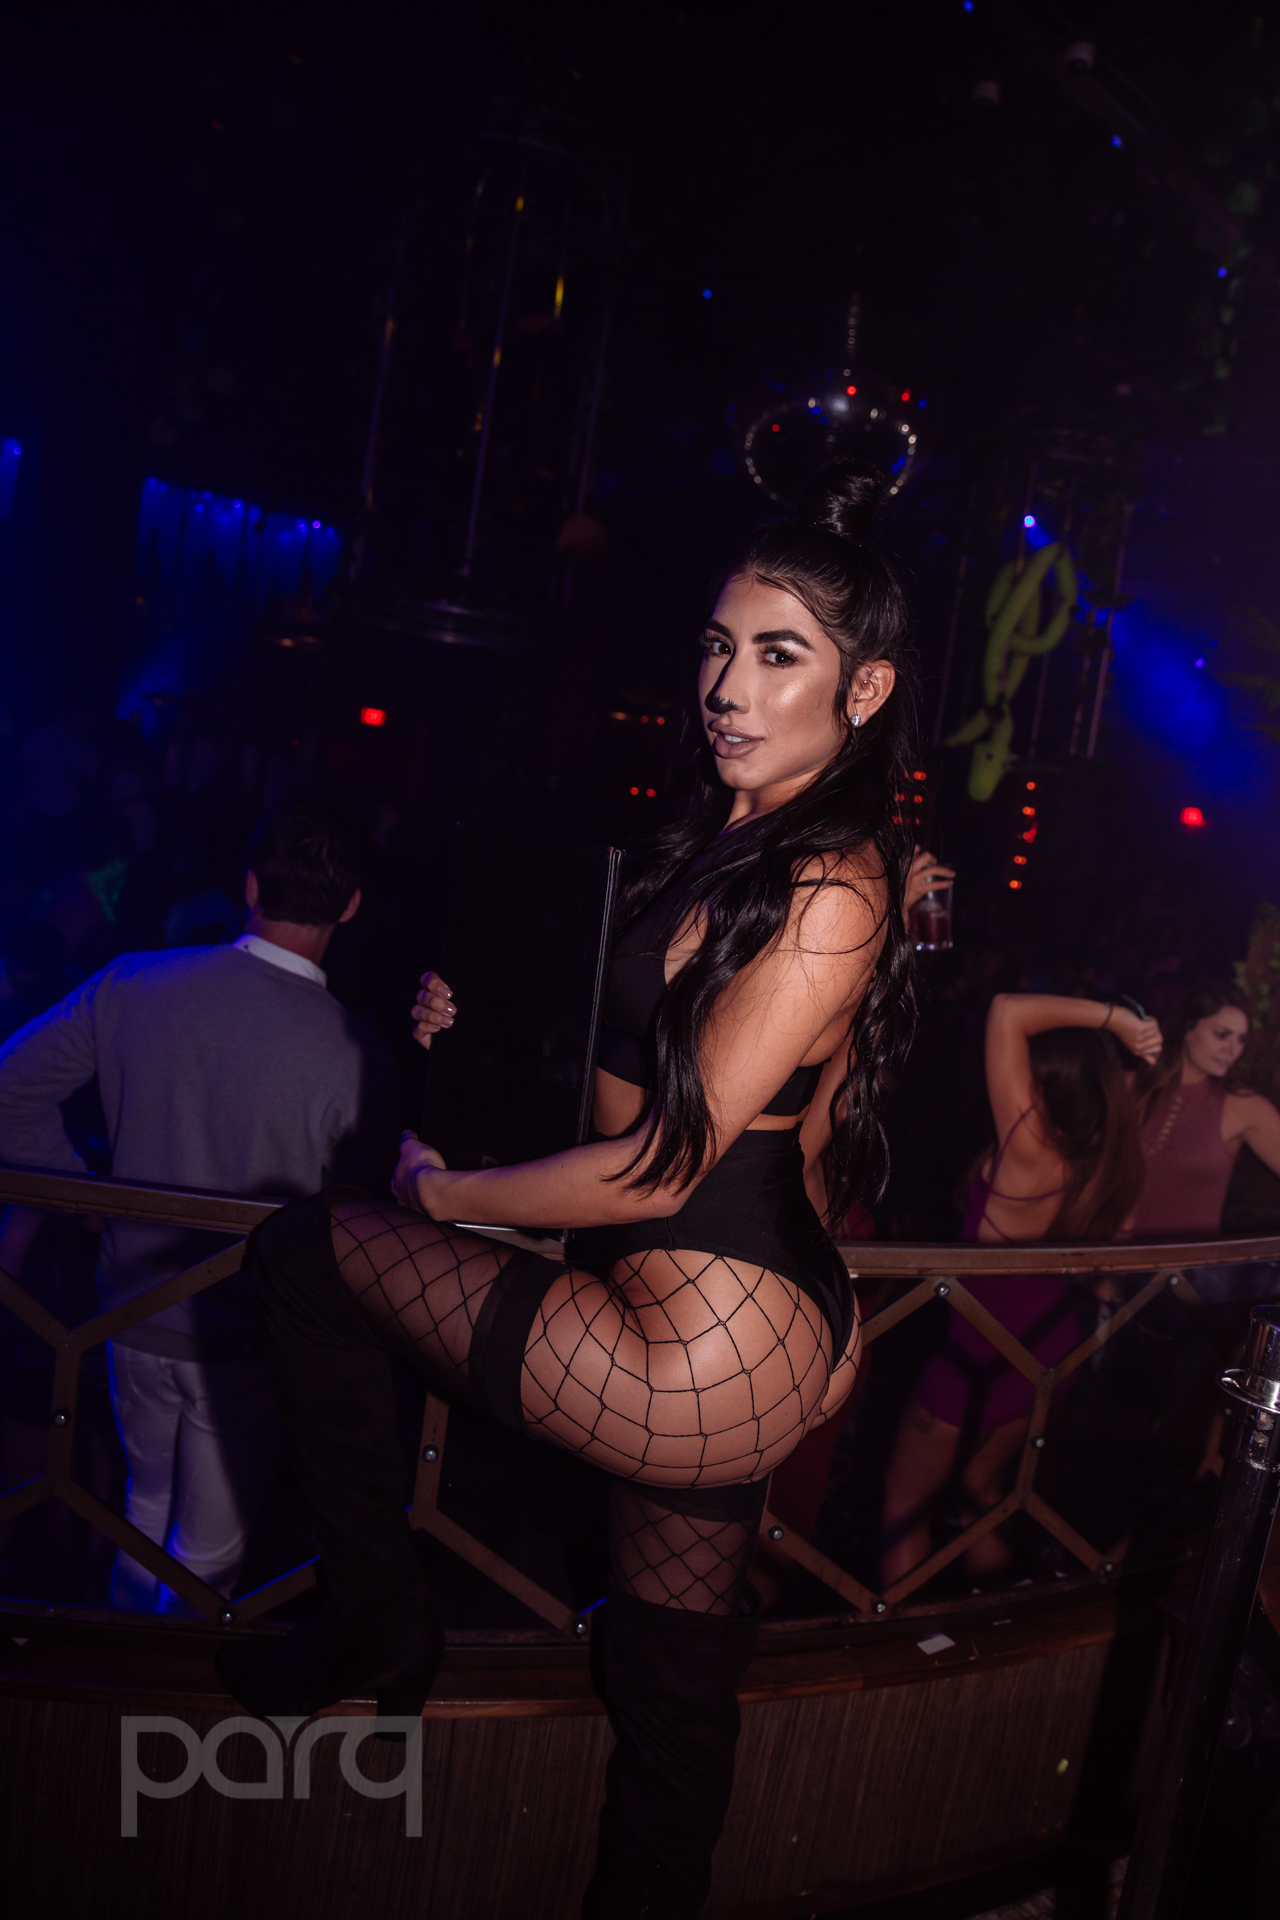 04.22.17 Zoo Funktion-31.jpg